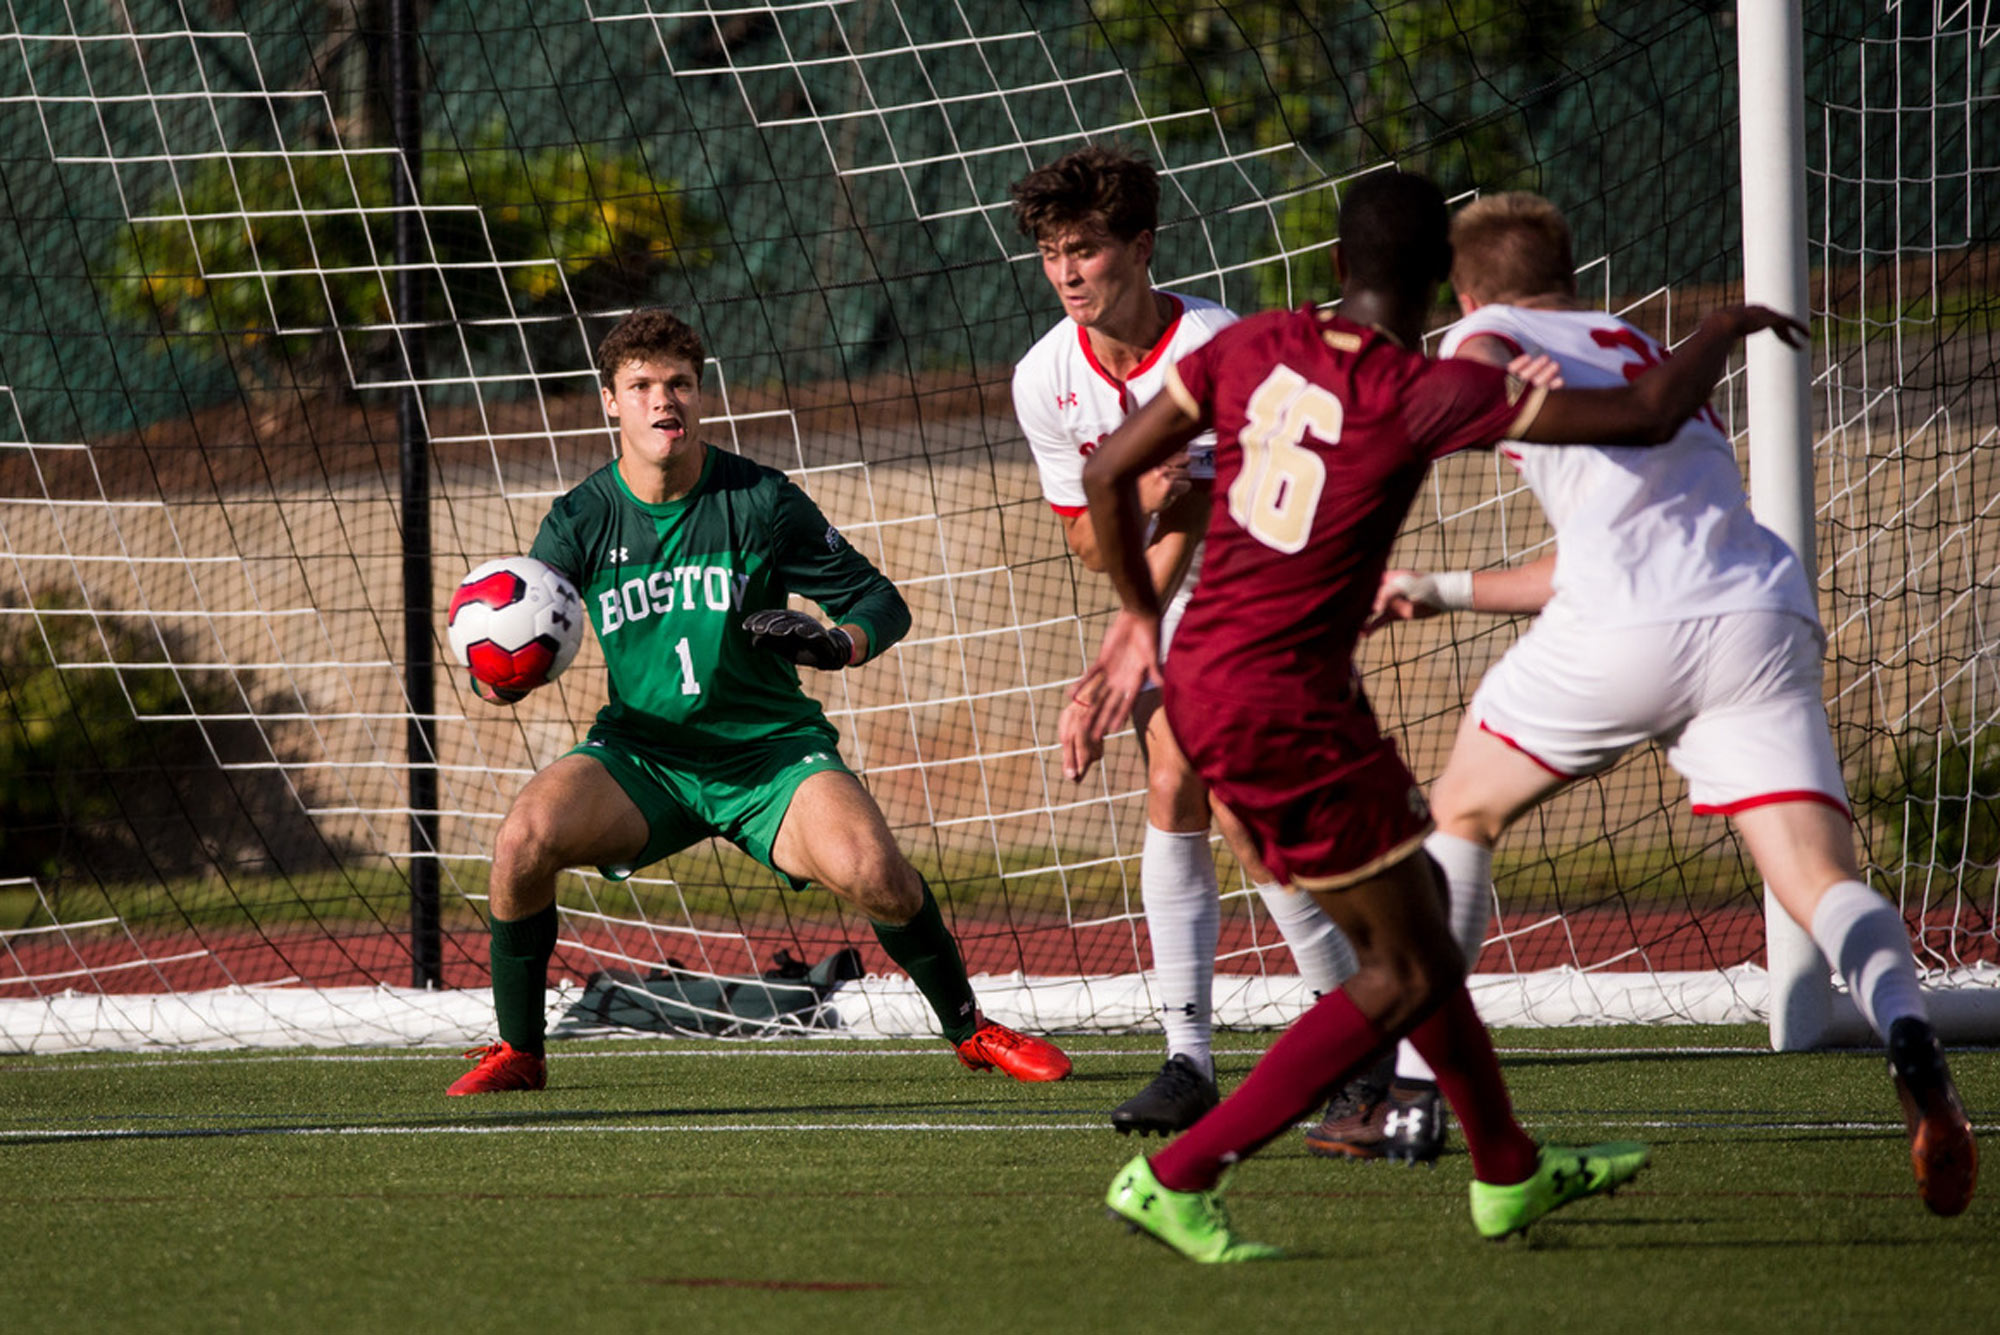 Michael Stone is among five seniors on the BU men's soccer team whose senior season has been cancelled.